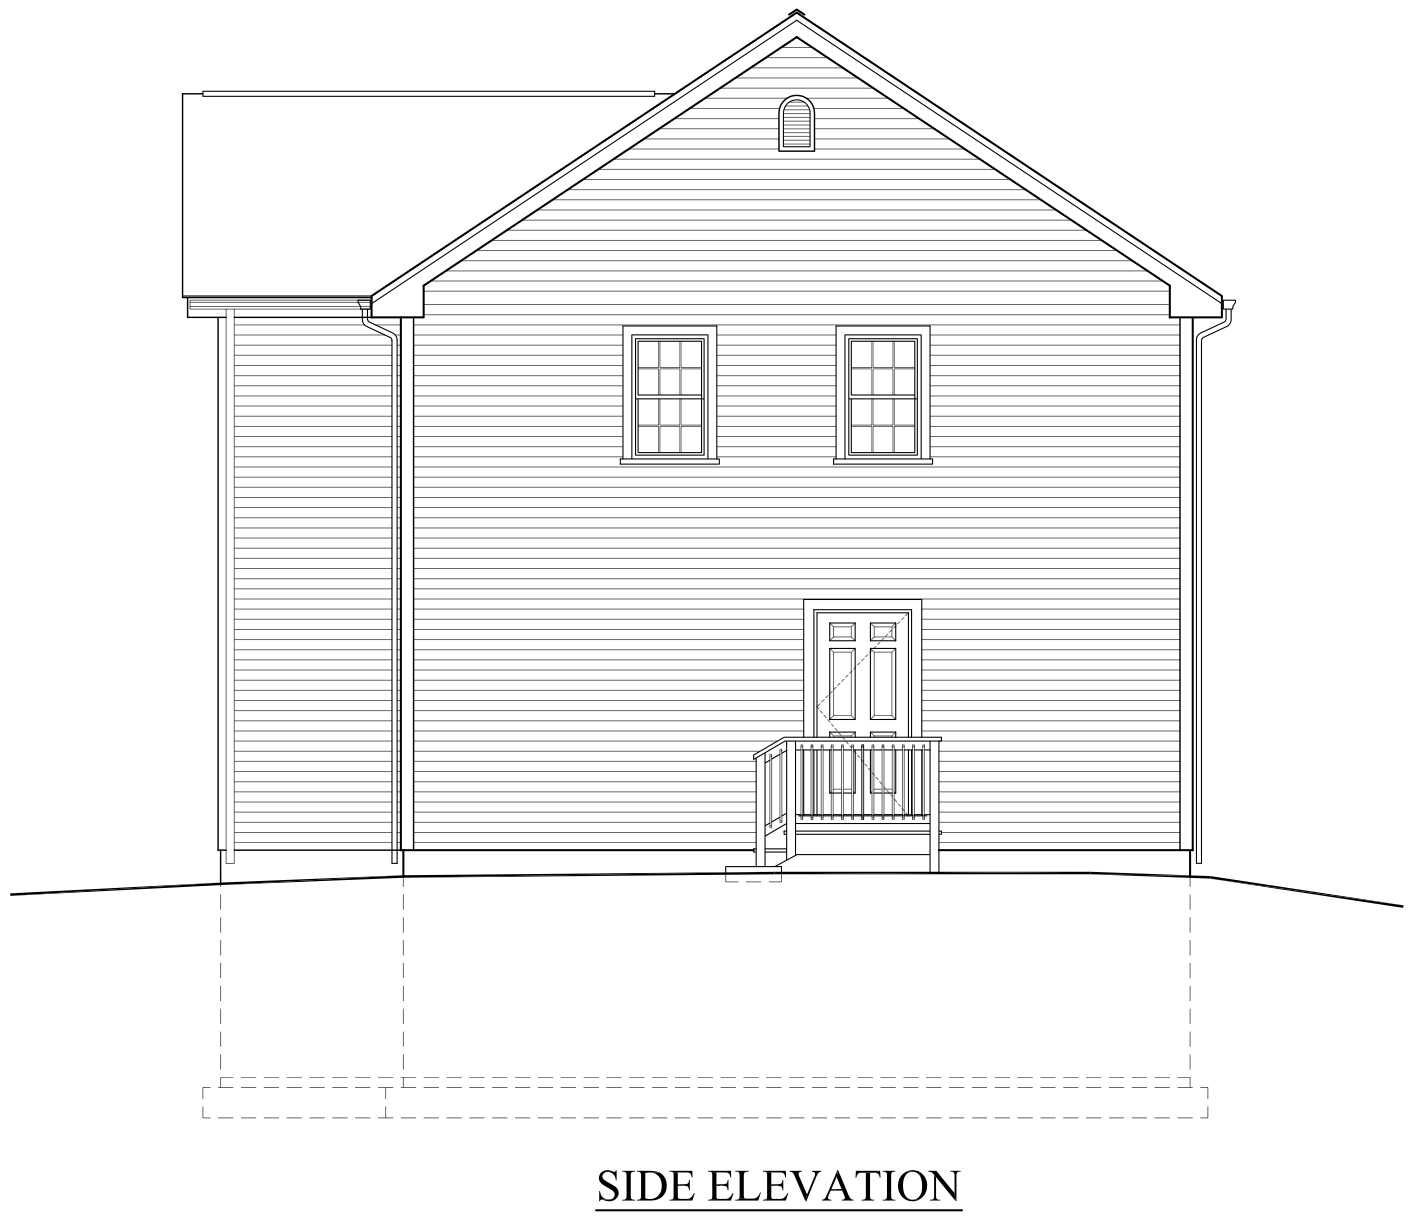 Building Front Elevation Drawings : Front view elevation of house plans